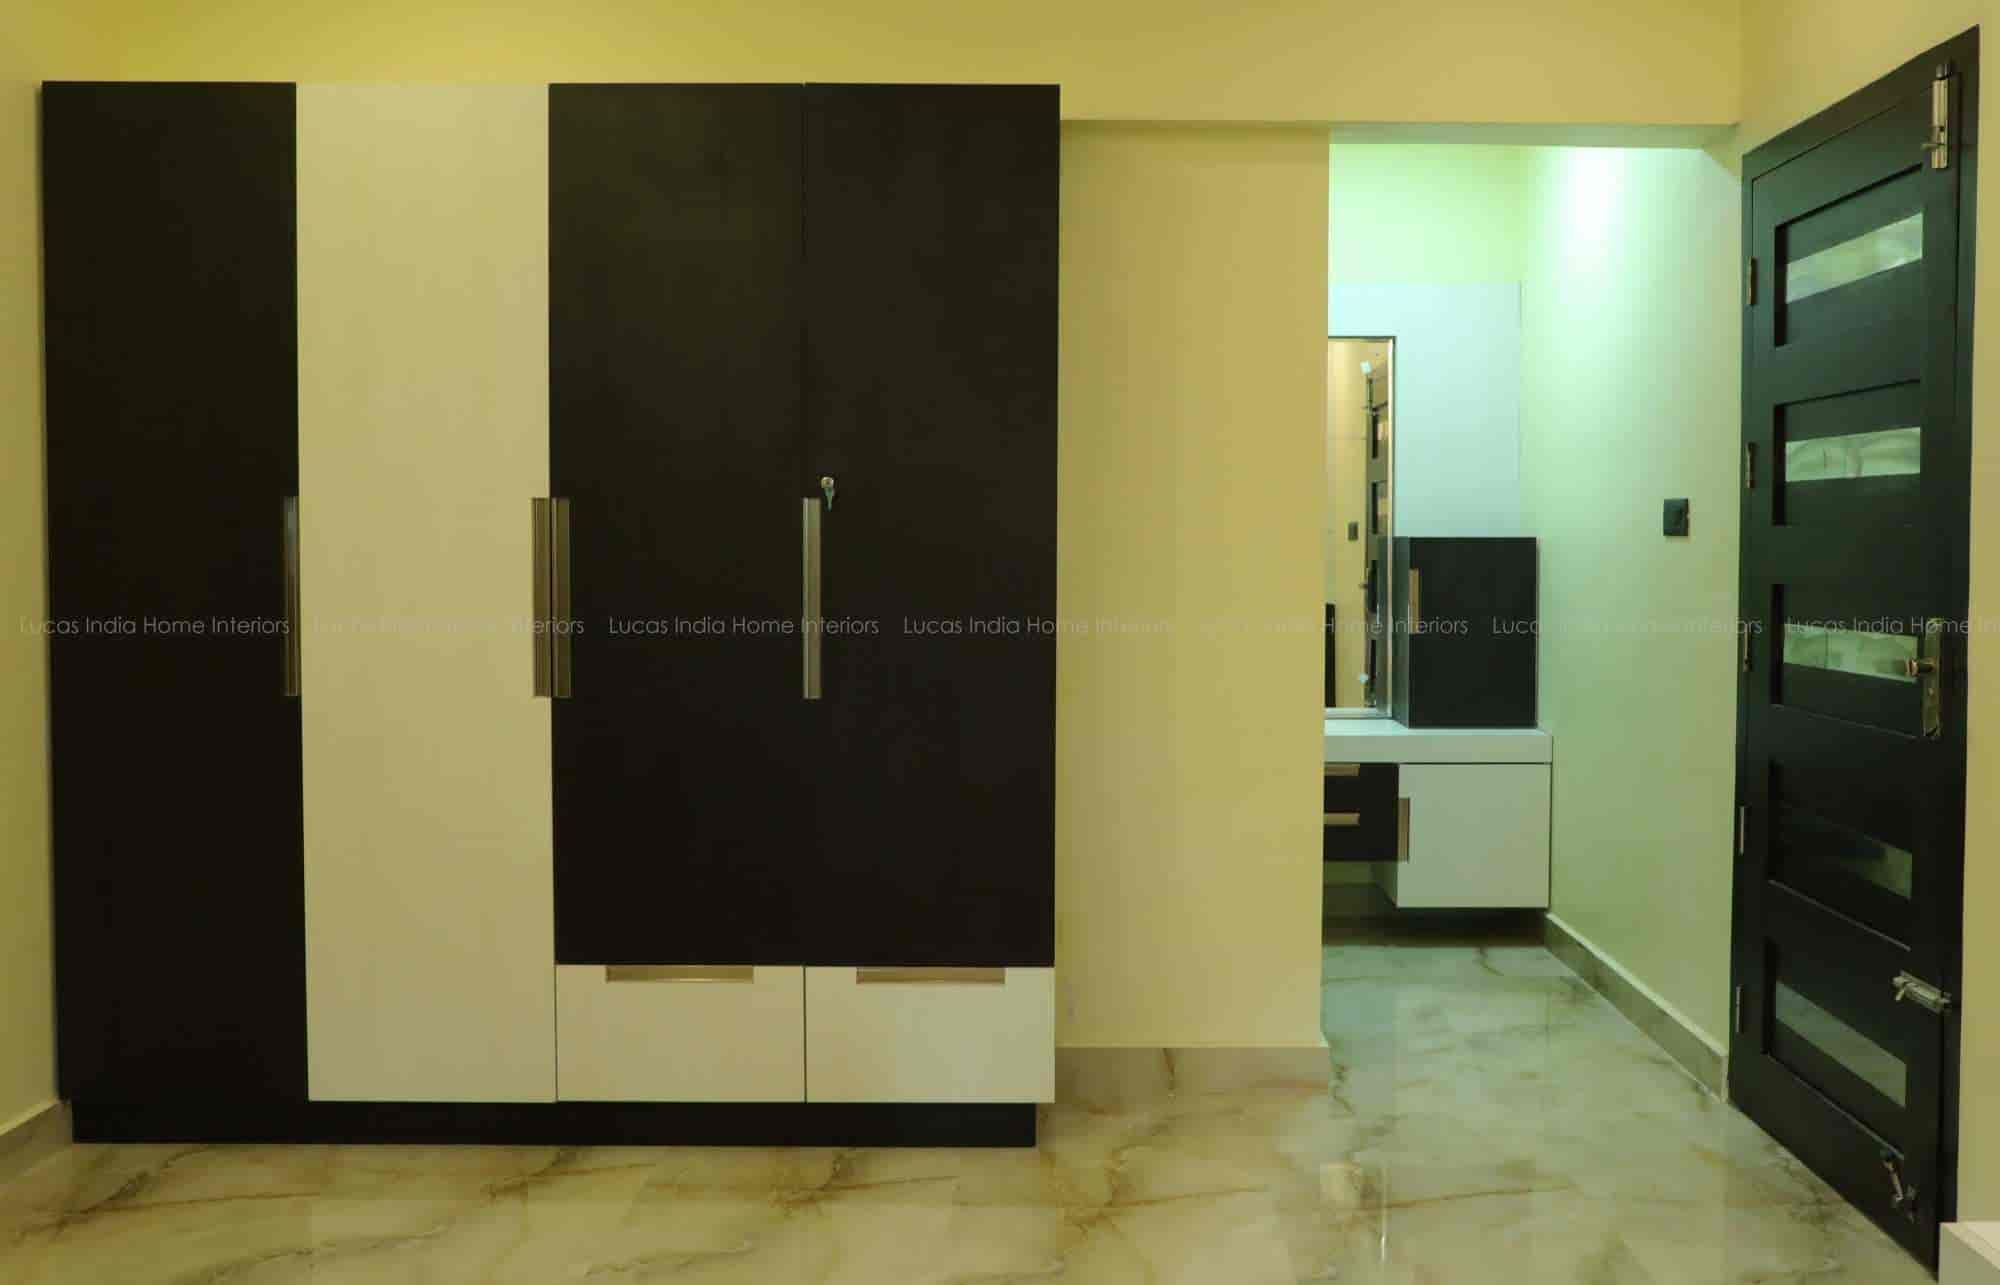 Lucas India Industries Furniture And Home Interiors